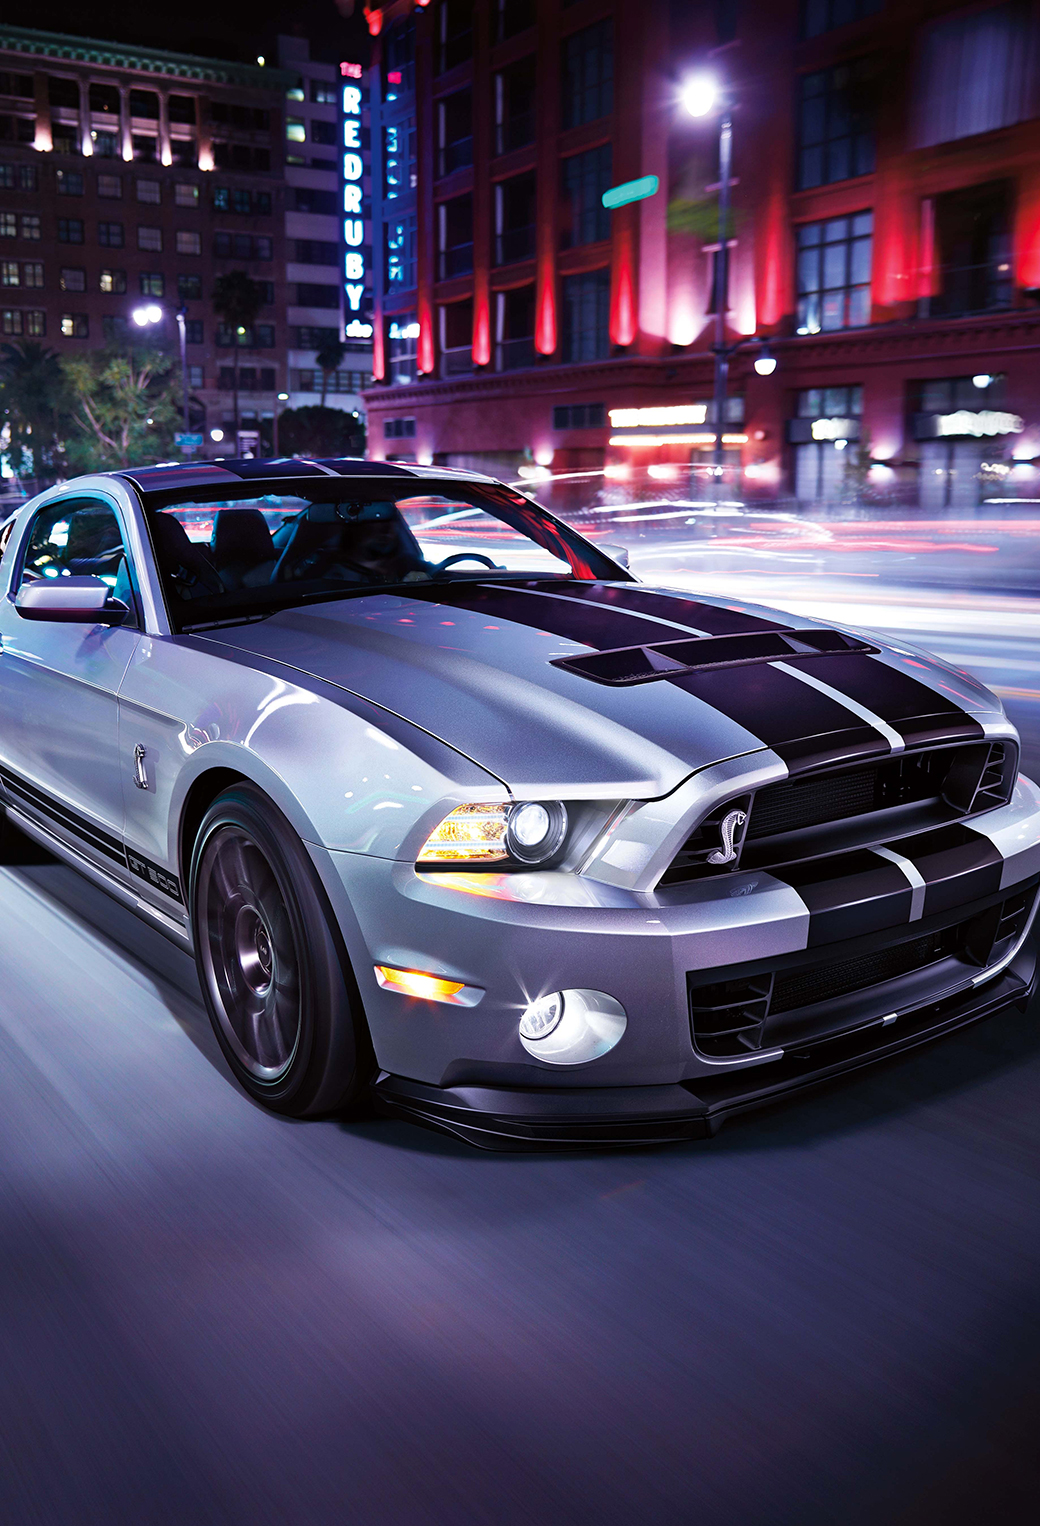 Muscle Car Iphone Wallpaper Ford Mustang Wallpaper For Iphone X 8 7 6 Free